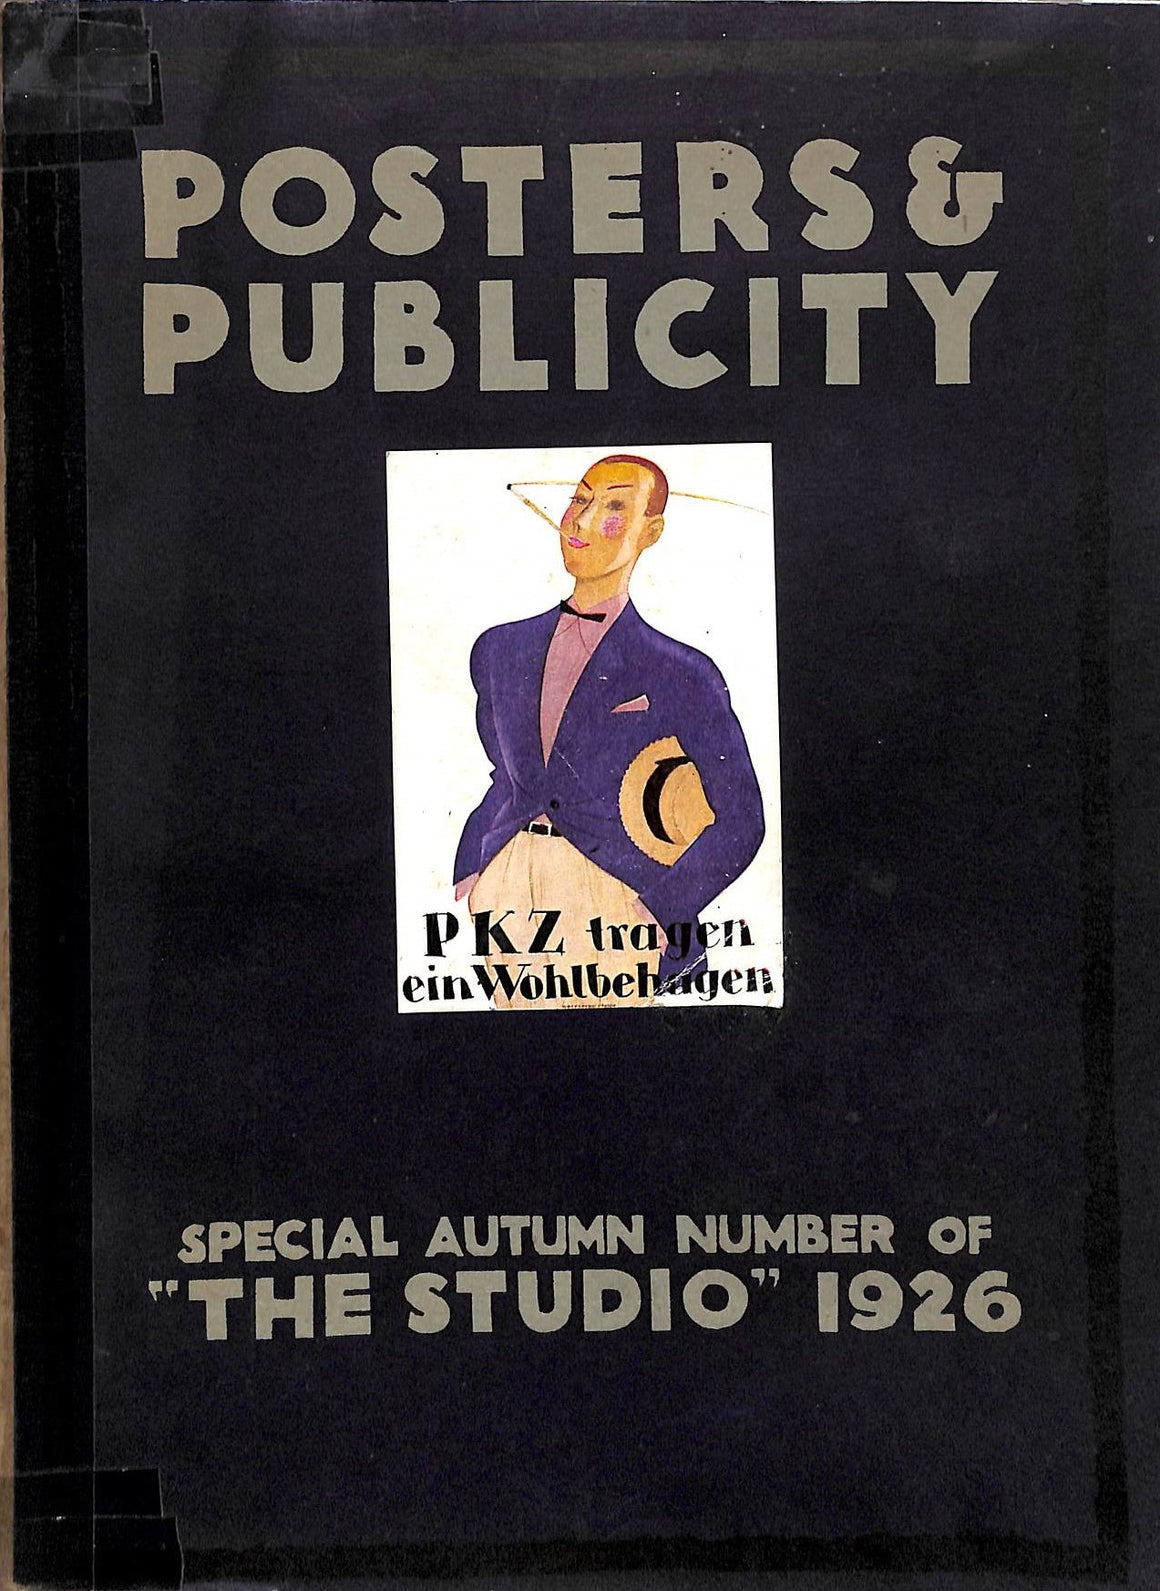 """Posters & Publicity Special Autumn Number of ""The Studio"" 1926"" Jones, Sydney R."